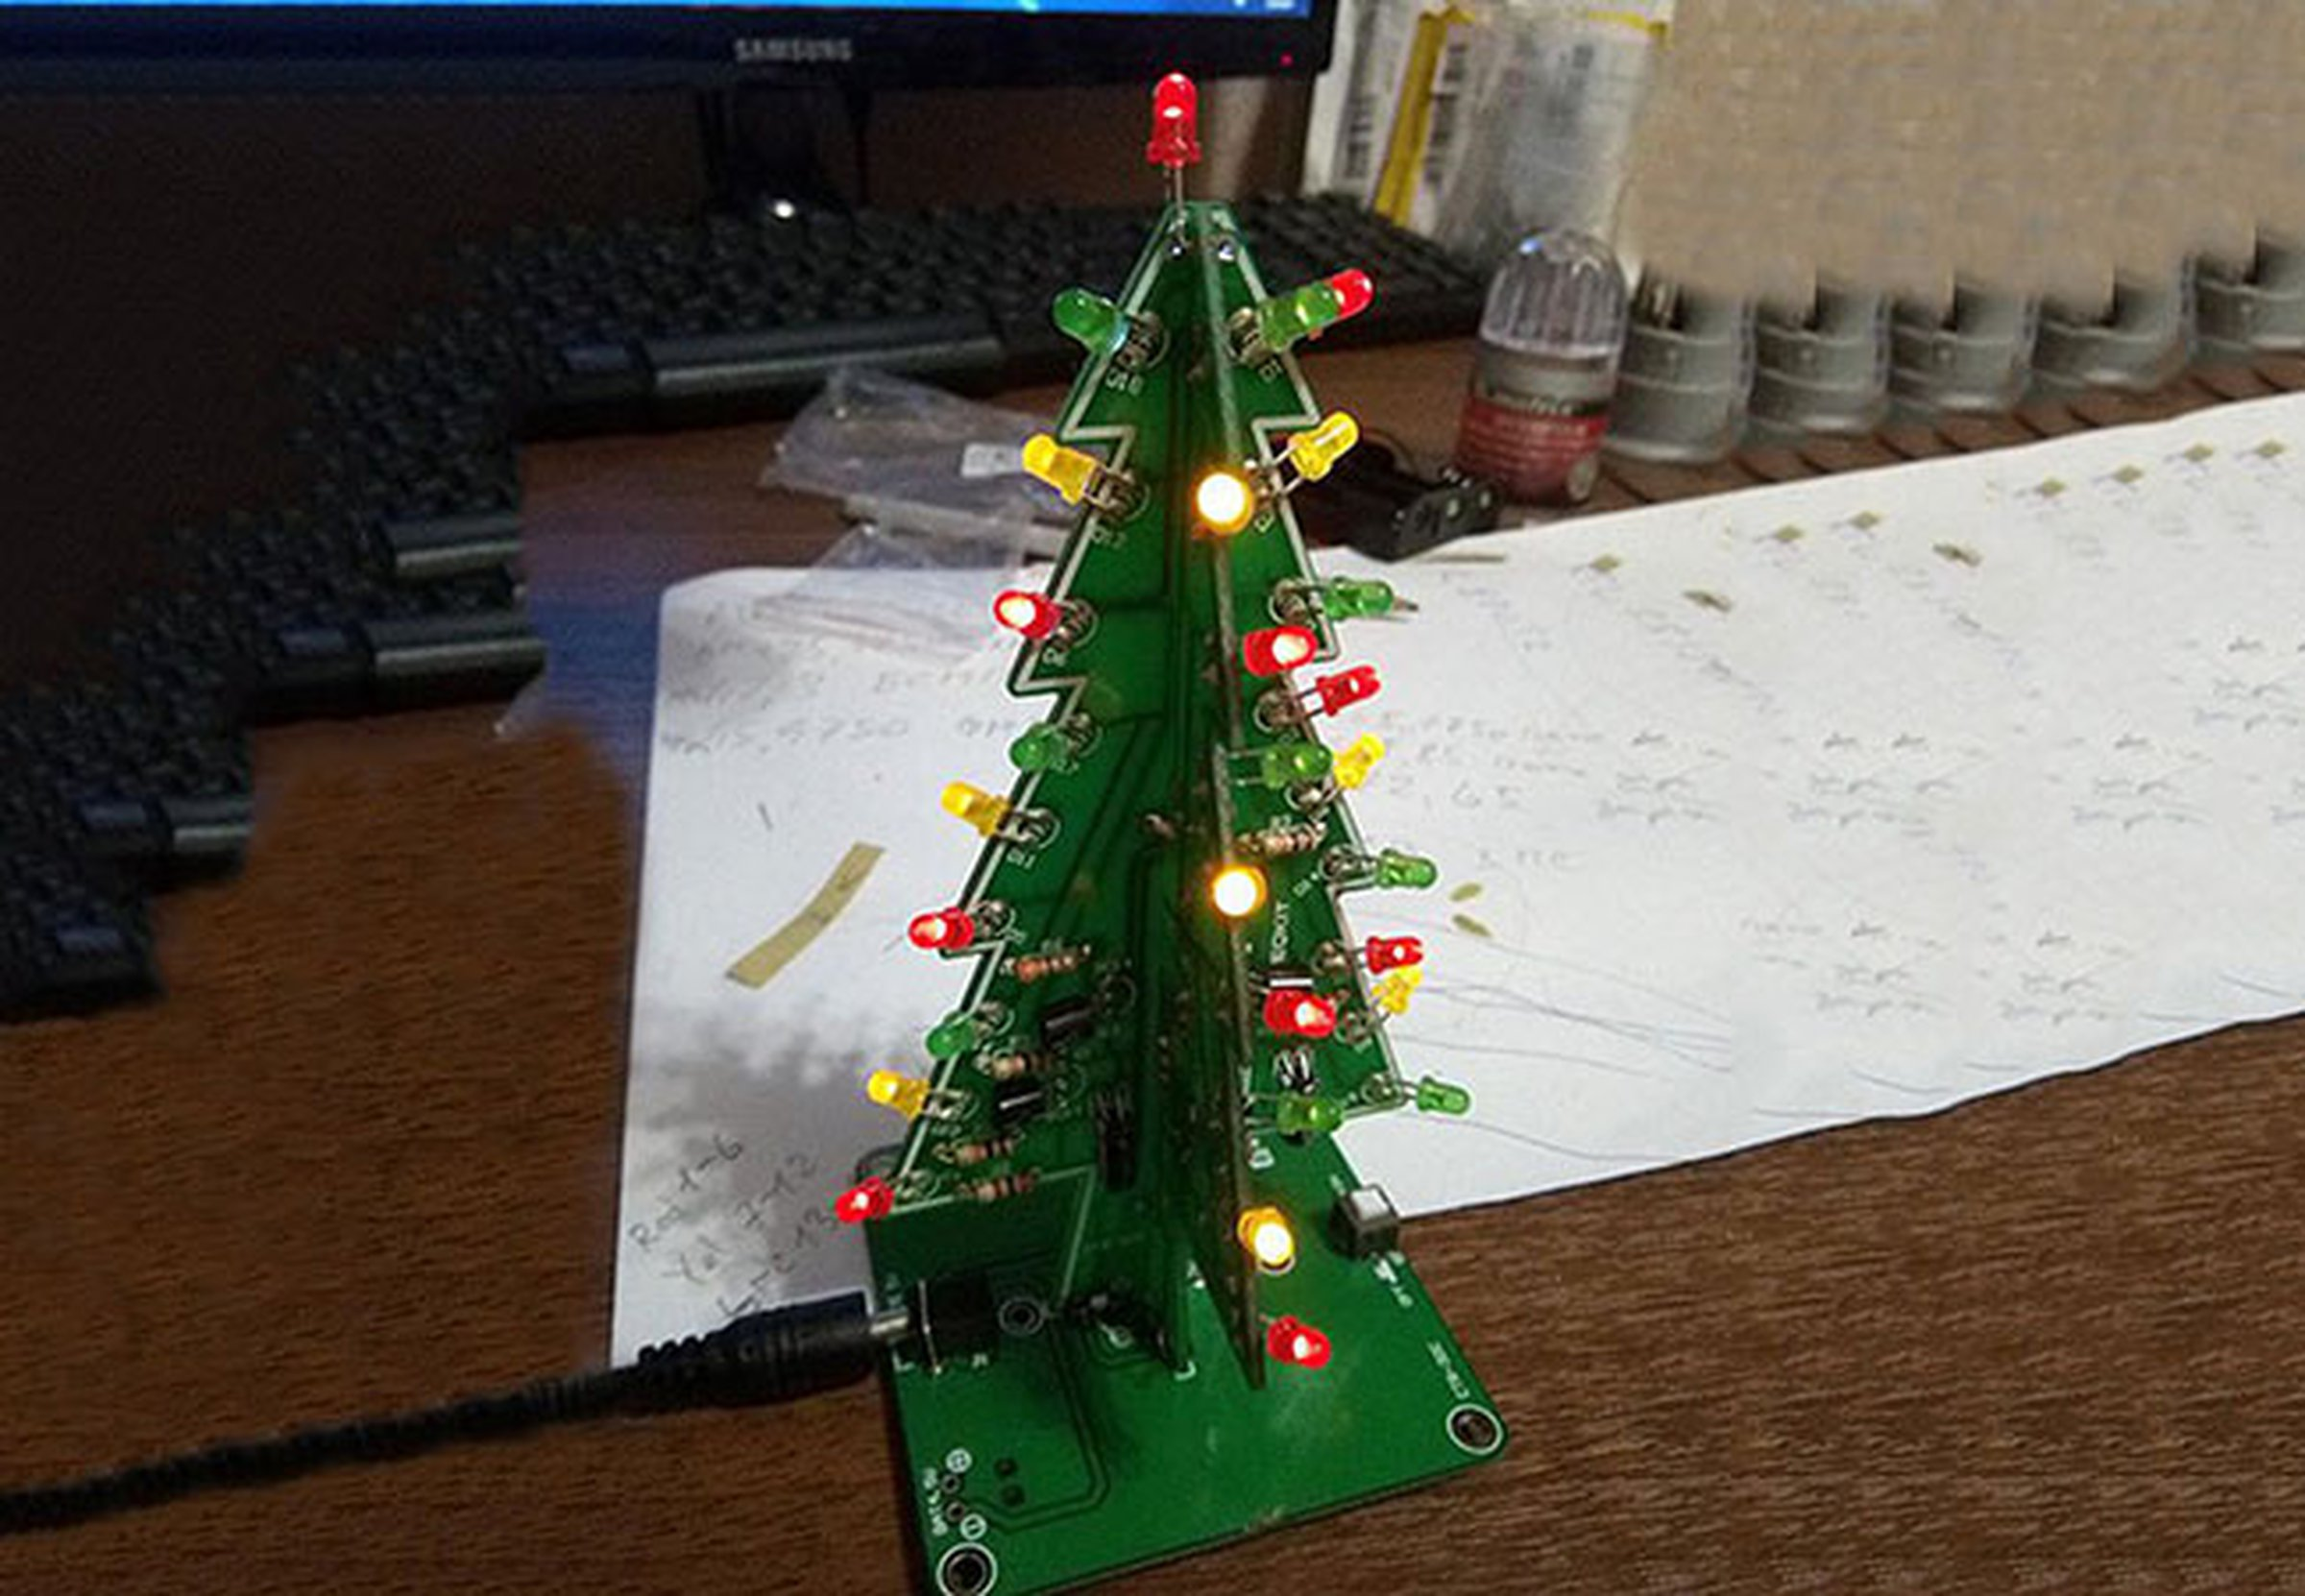 Diy Flashing Led Christmas Tree Circuit Kit7212 From Icstation On Light Wiring Diagram In Addition 3 Wire 1